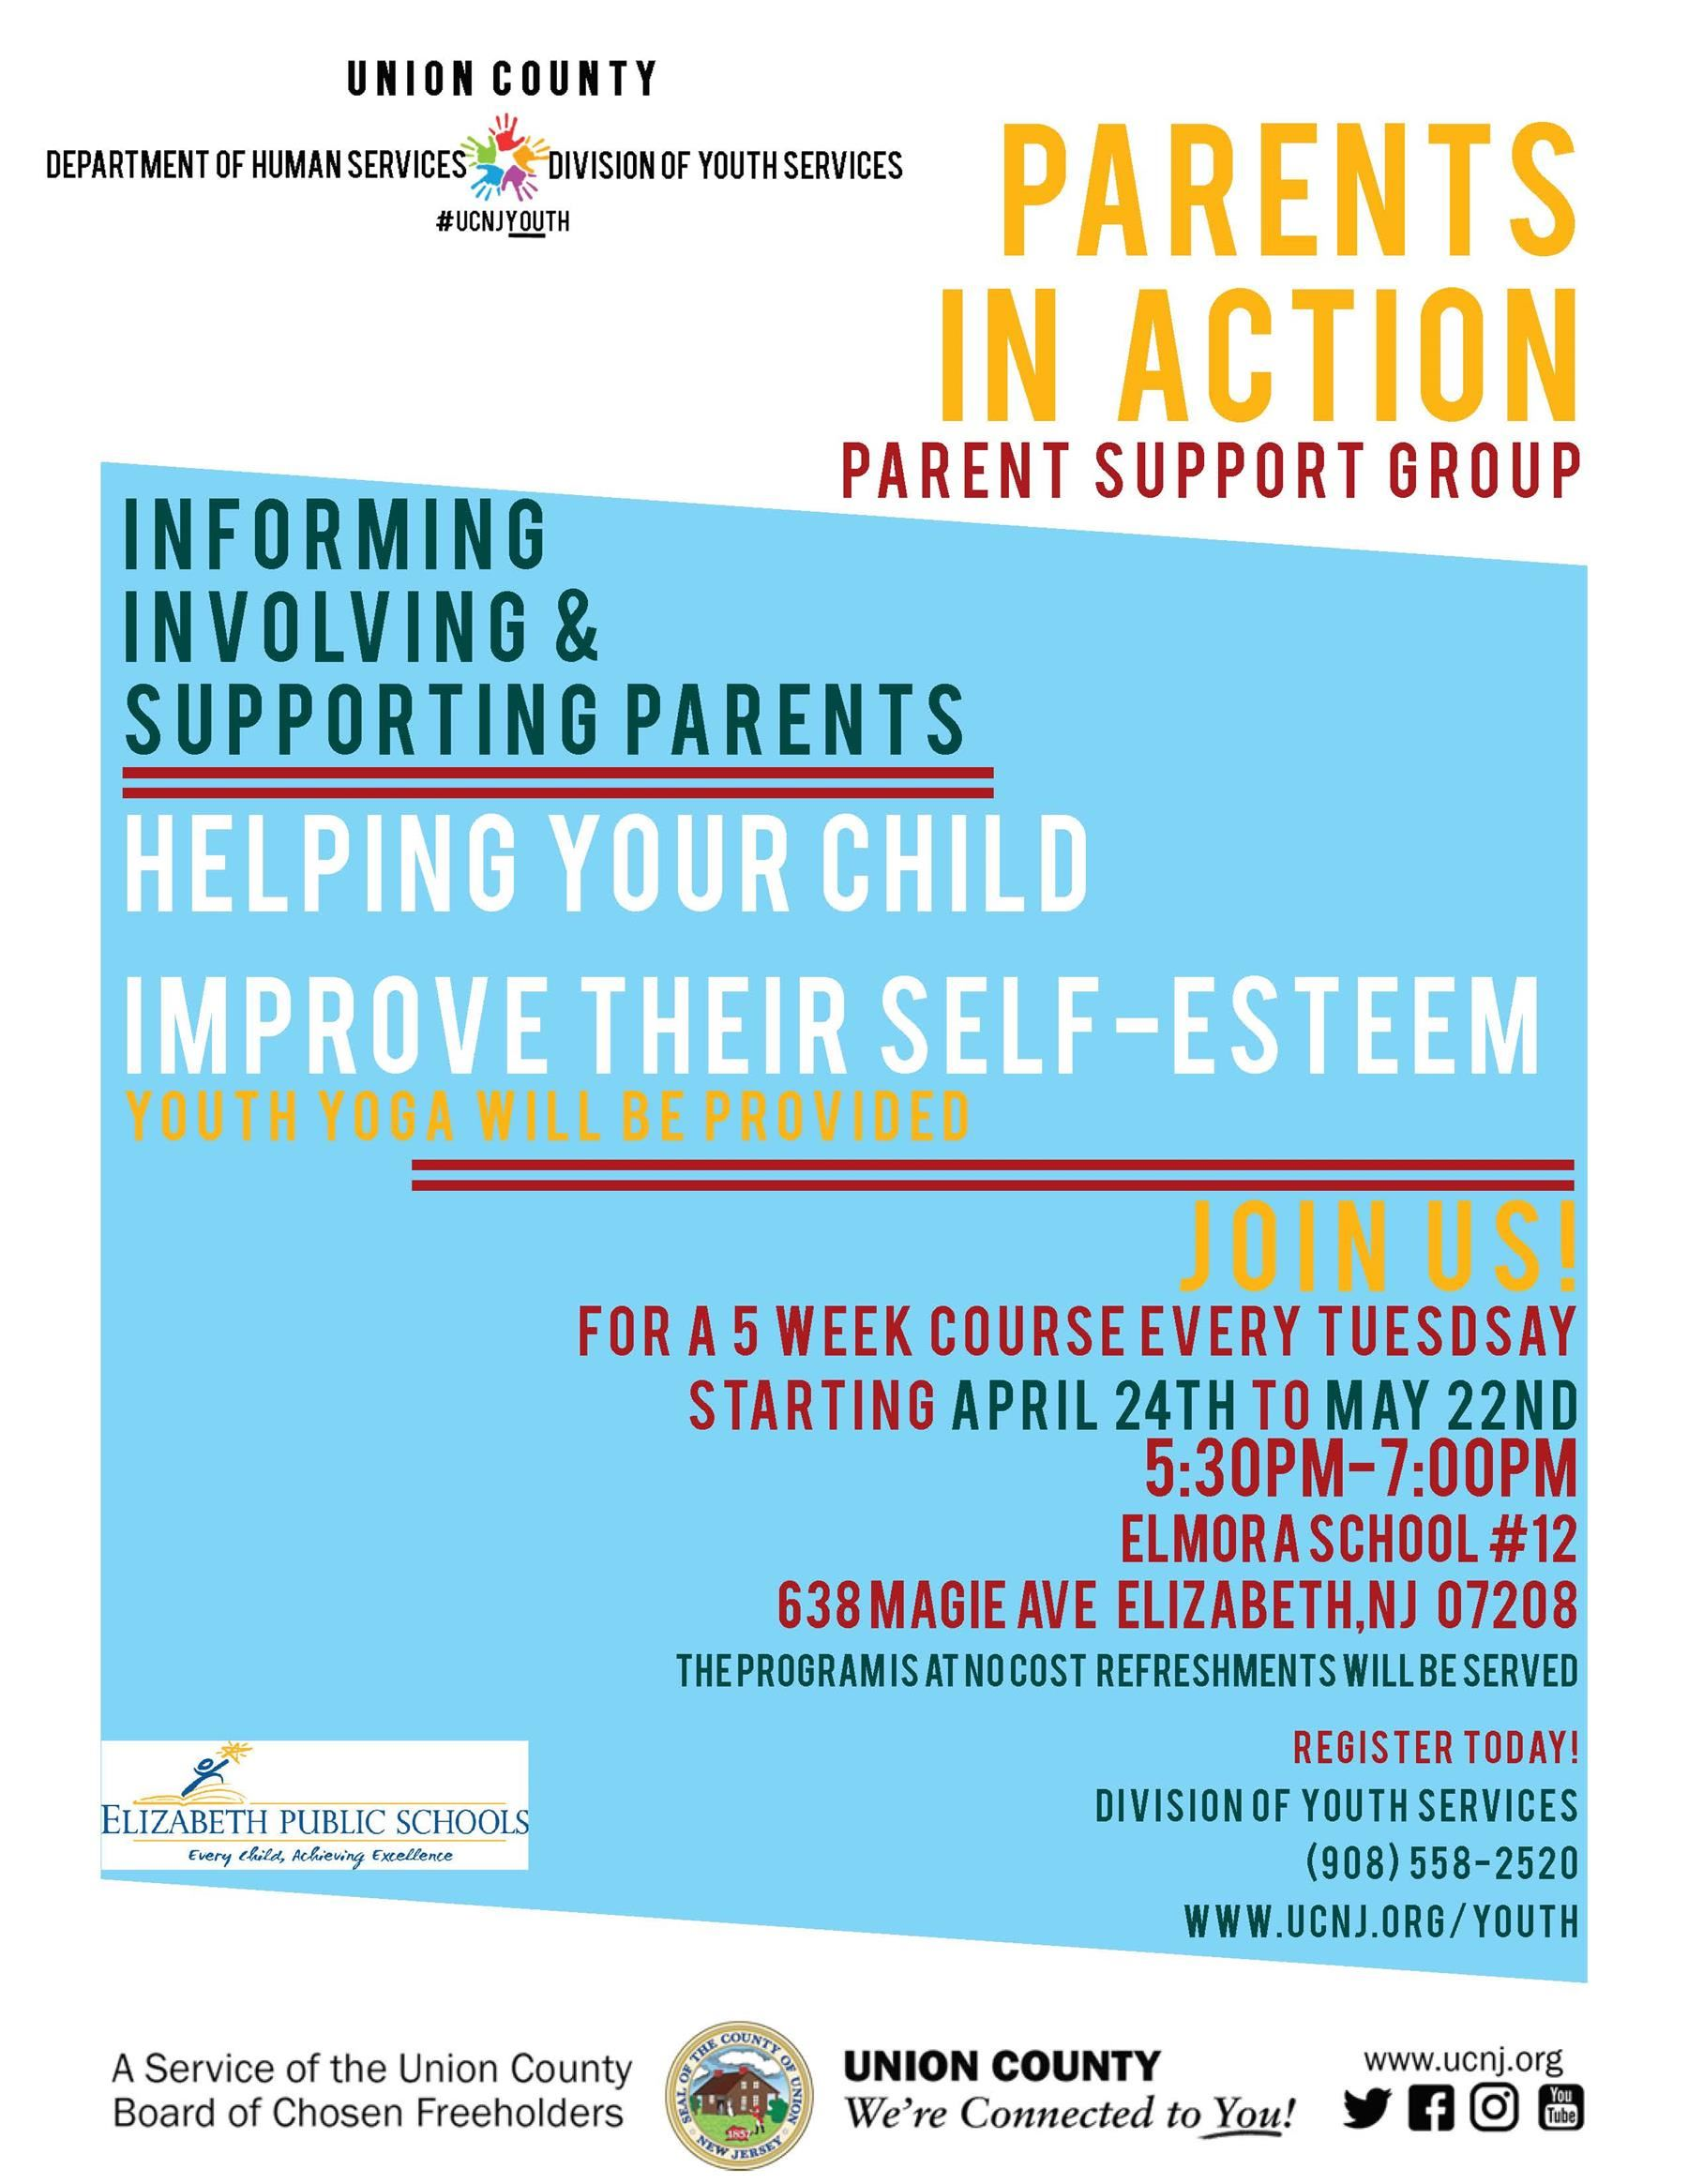 Parents in Action Support Group